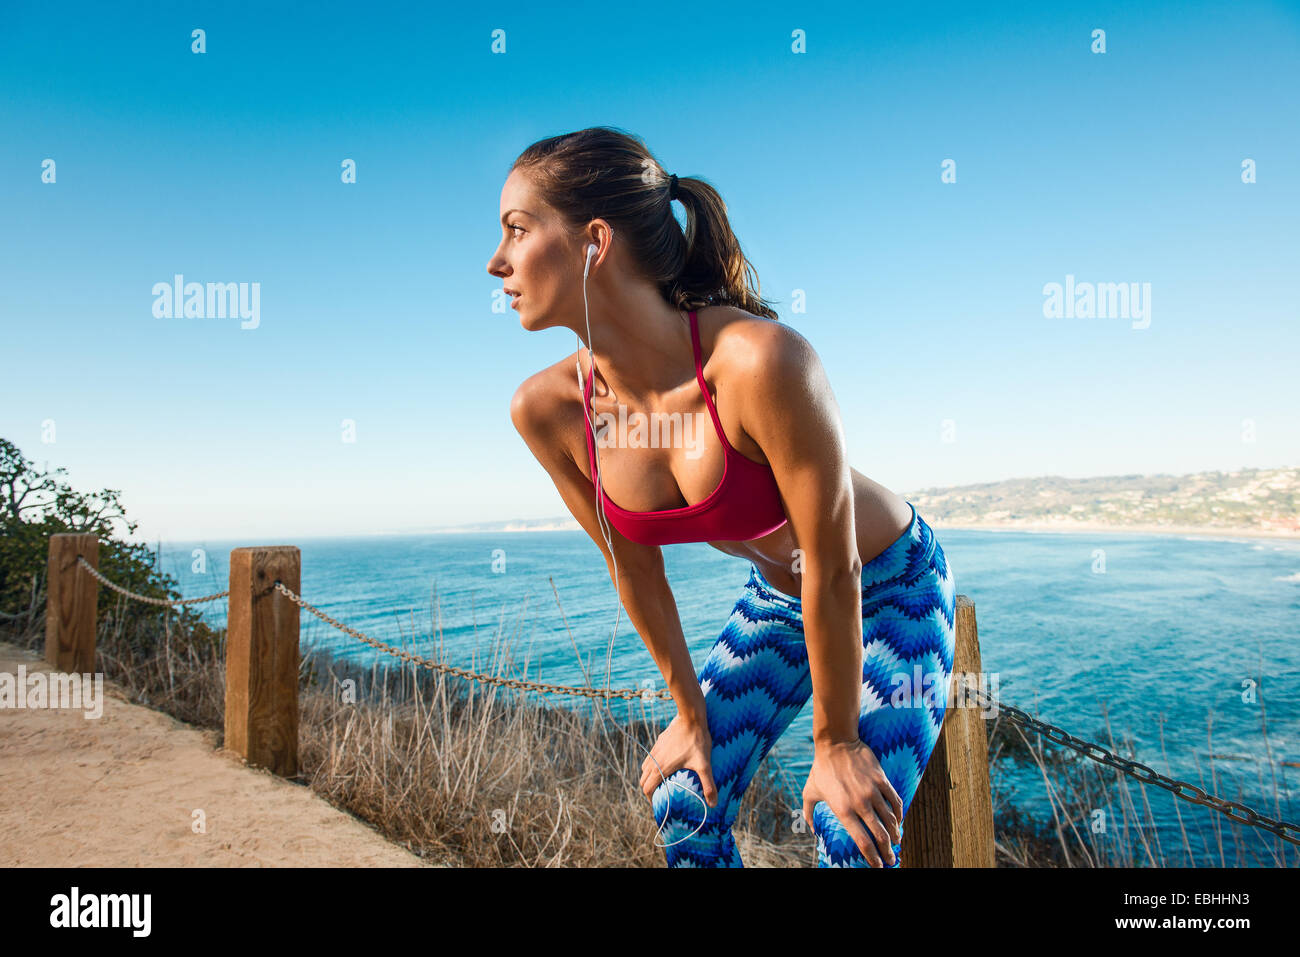 Young woman doing stretches by sea - Stock Image